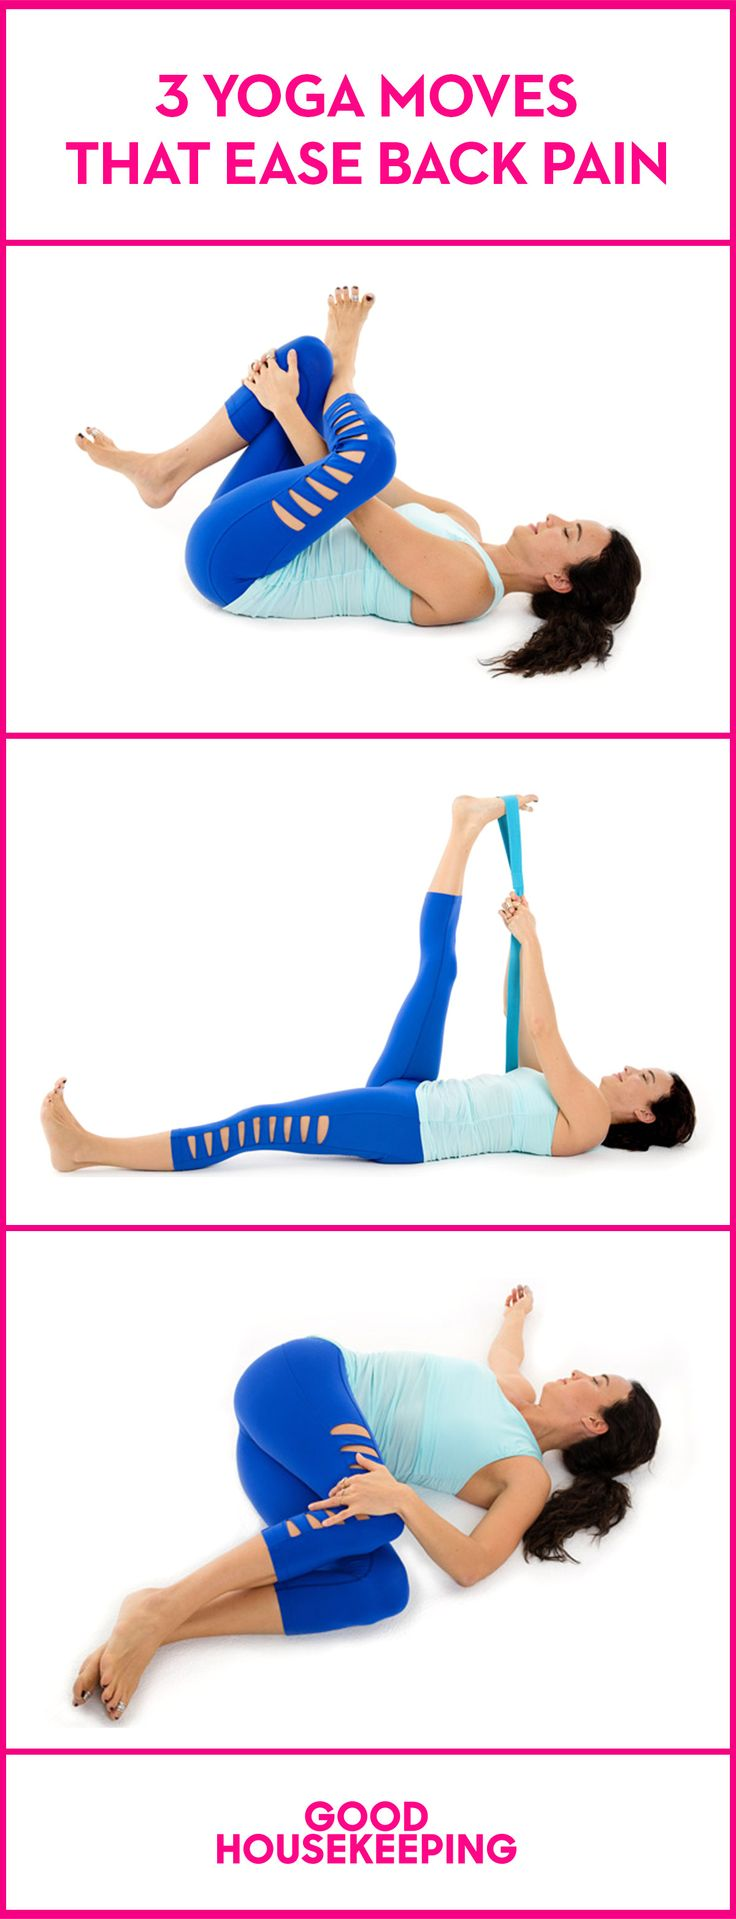 Put down the aspirin and get on the floor with these yoga moves that help an aching back.